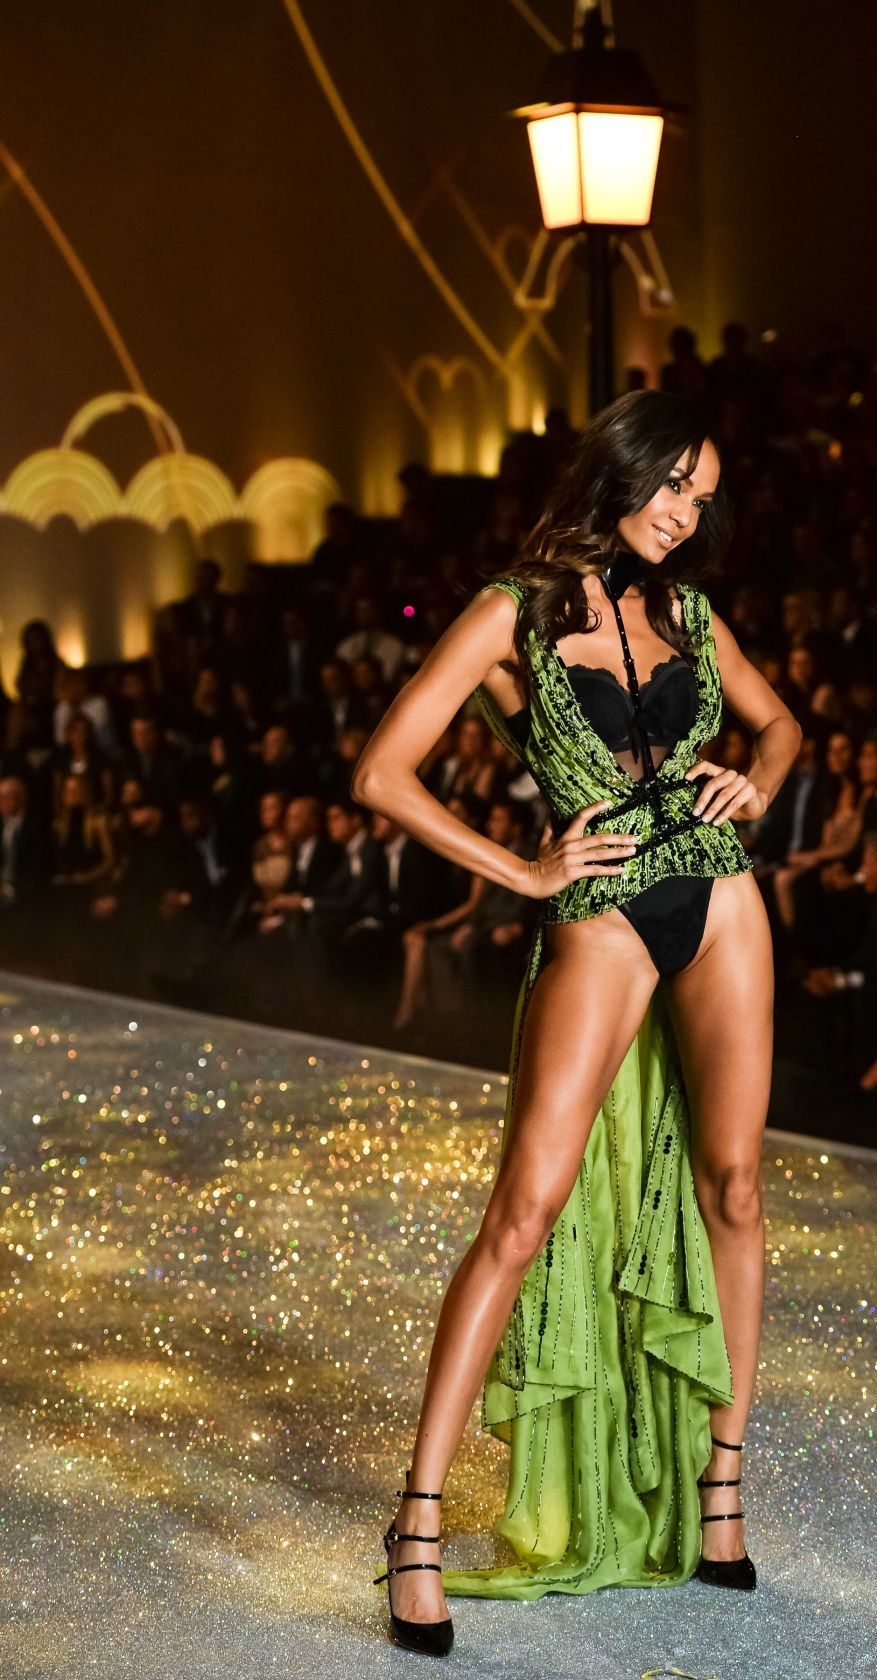 joan-smalls-at-2013-victoria-s-secret-fashion-show-in-new-york_13.jpg - 374.74 KB